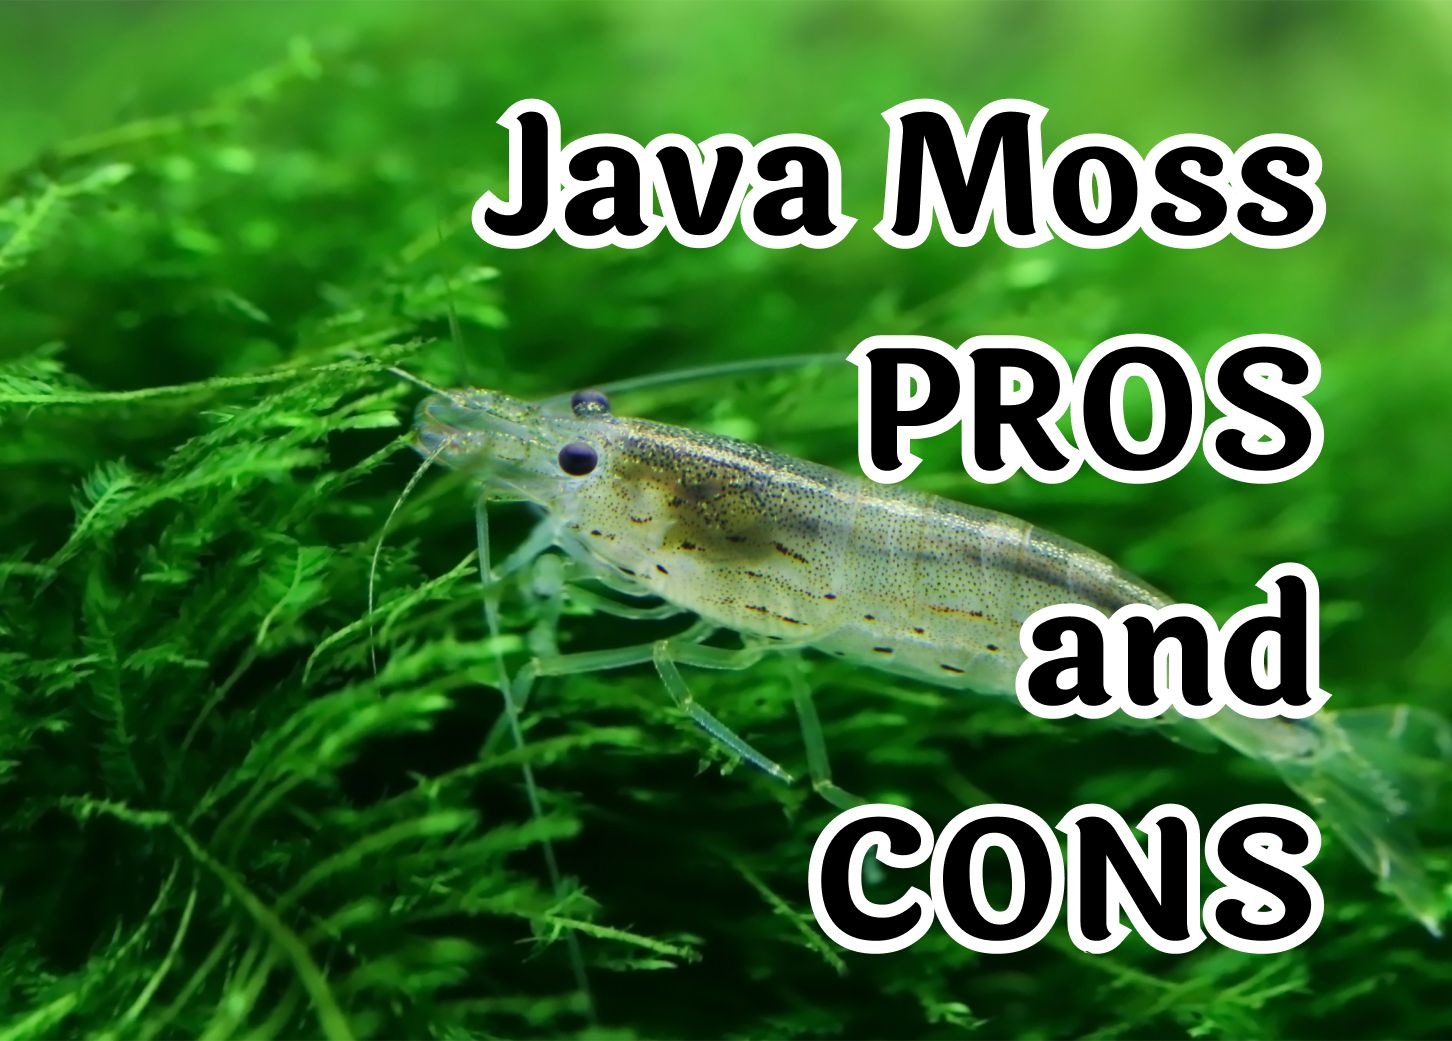 Important things to know before introducing Java Moss into your aquarium